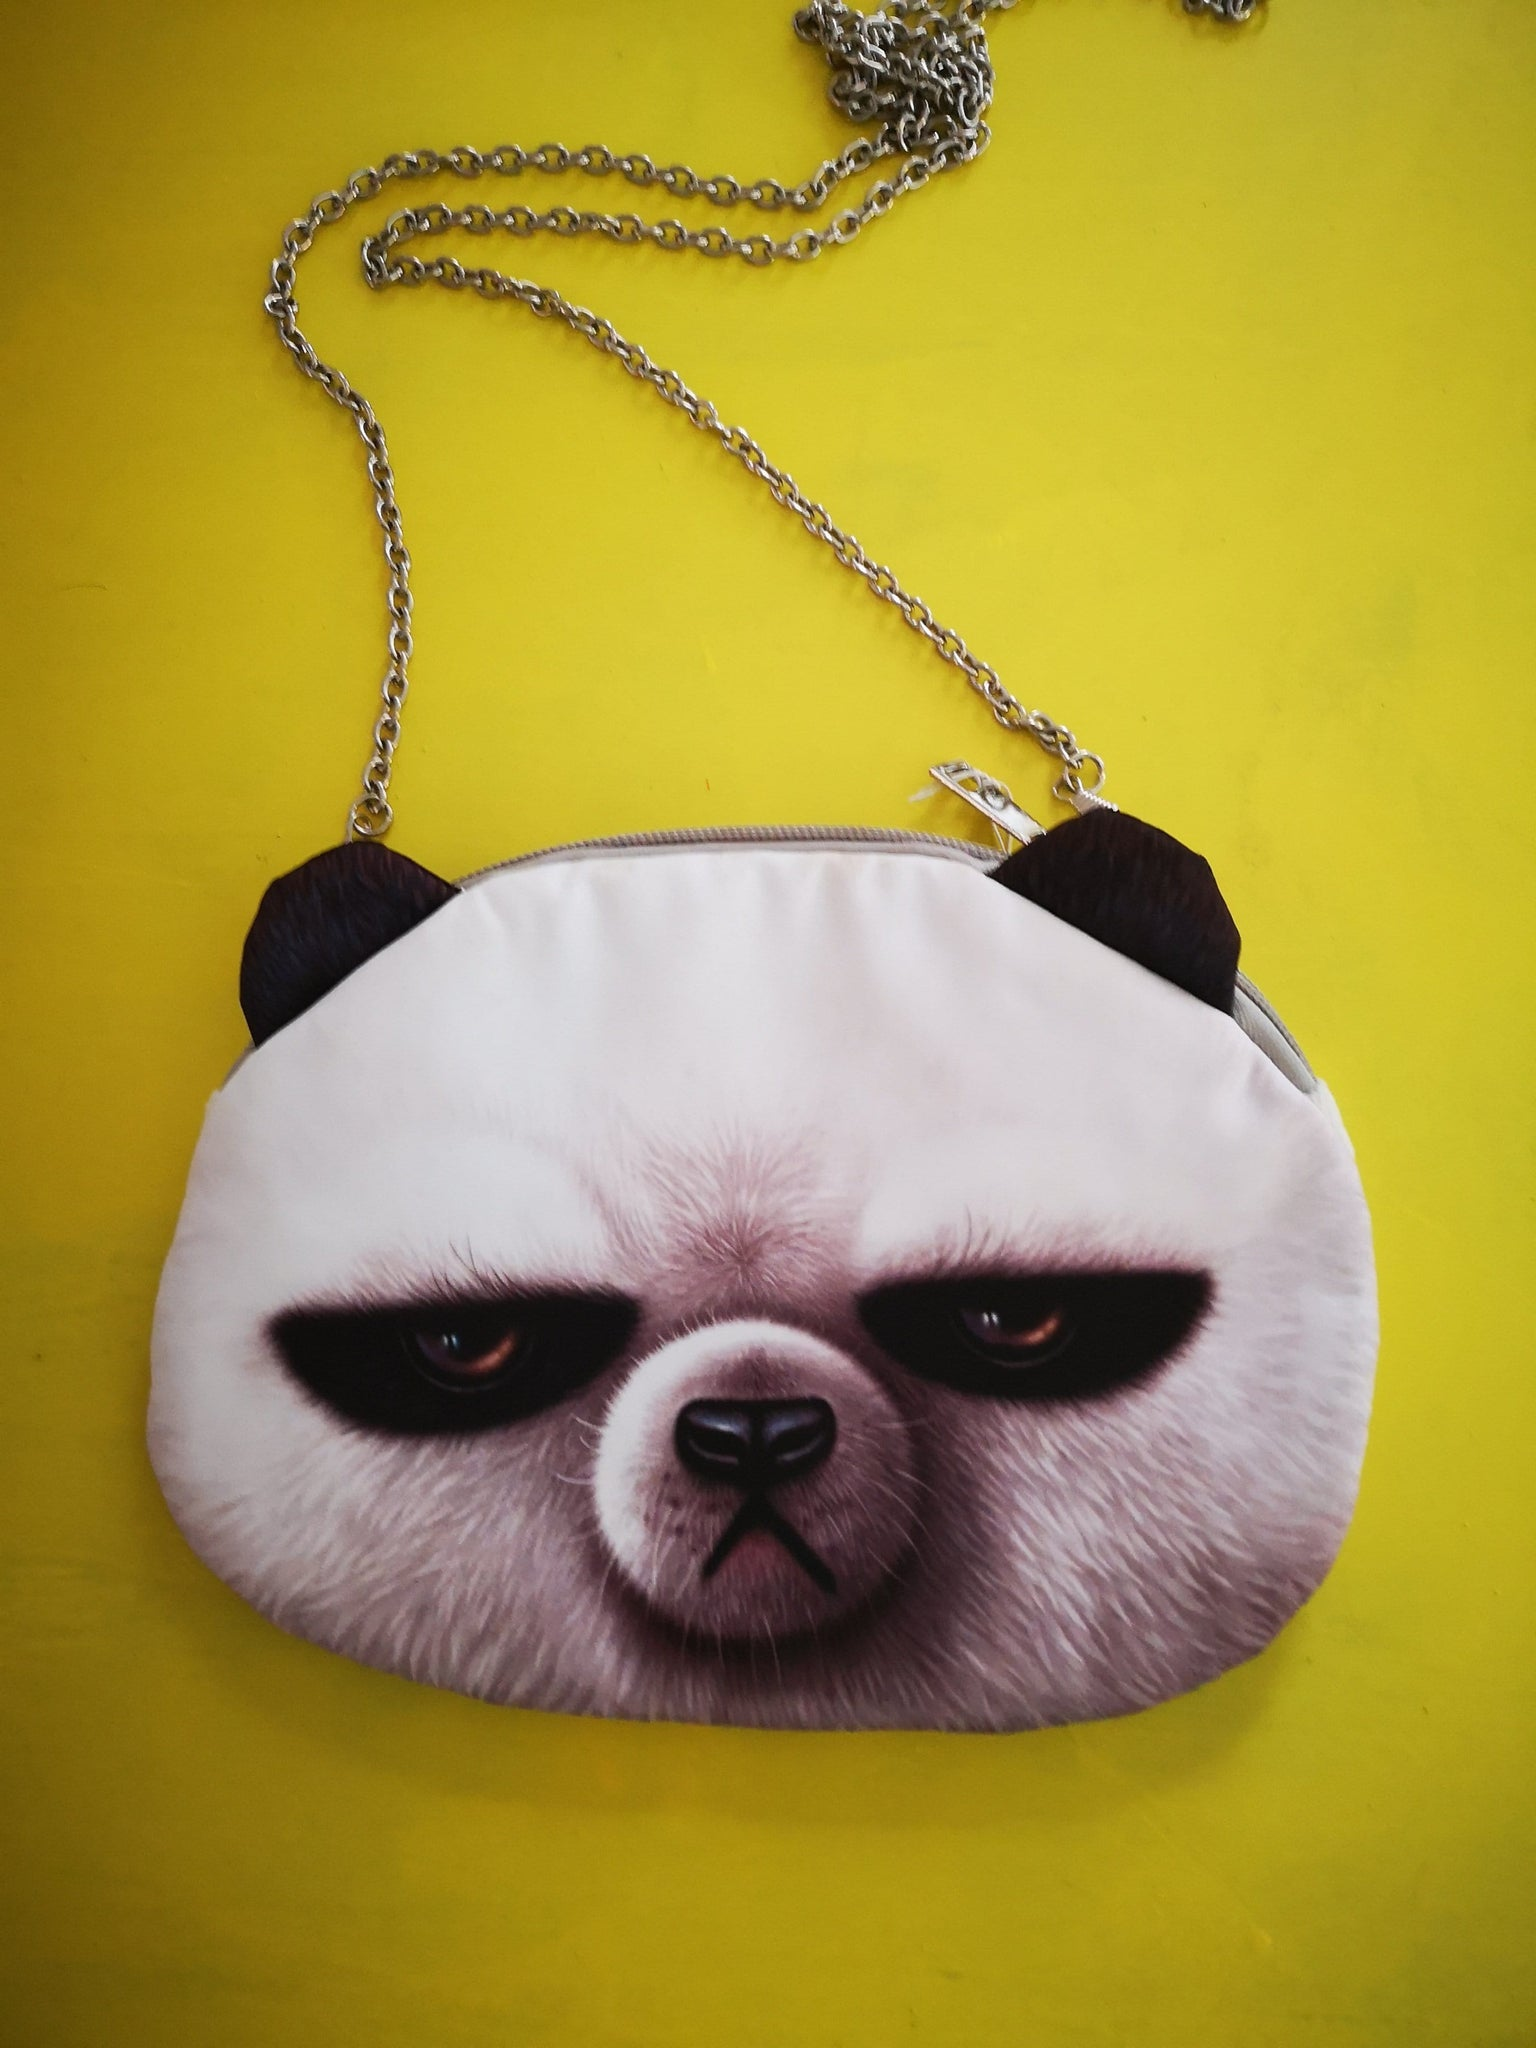 Animal angry bear chain small bag